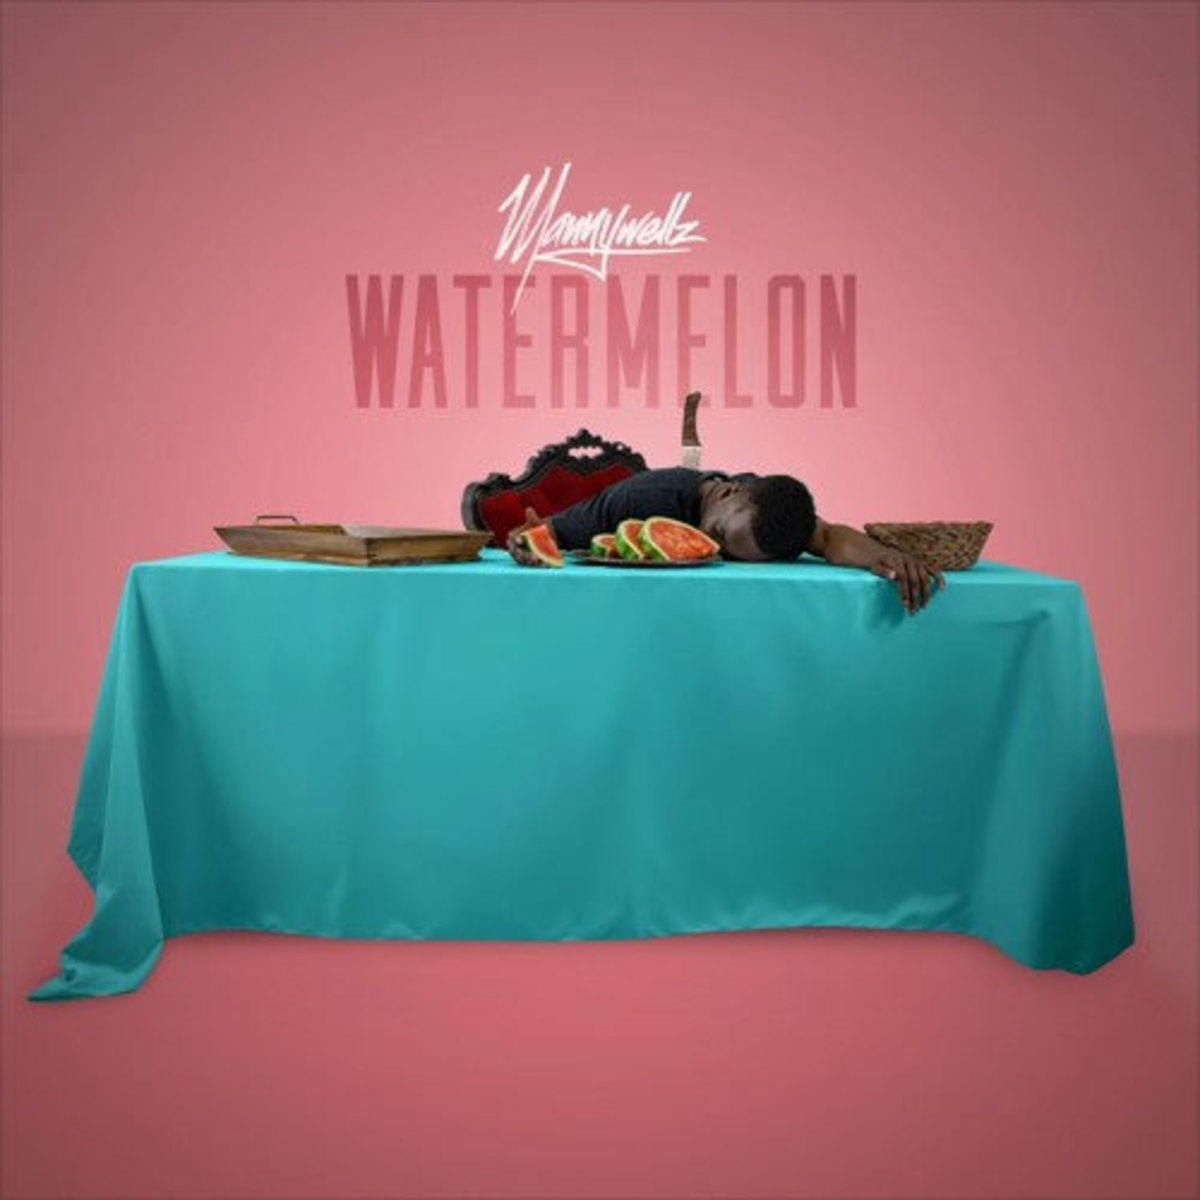 mannywellz-watermelon.jpg